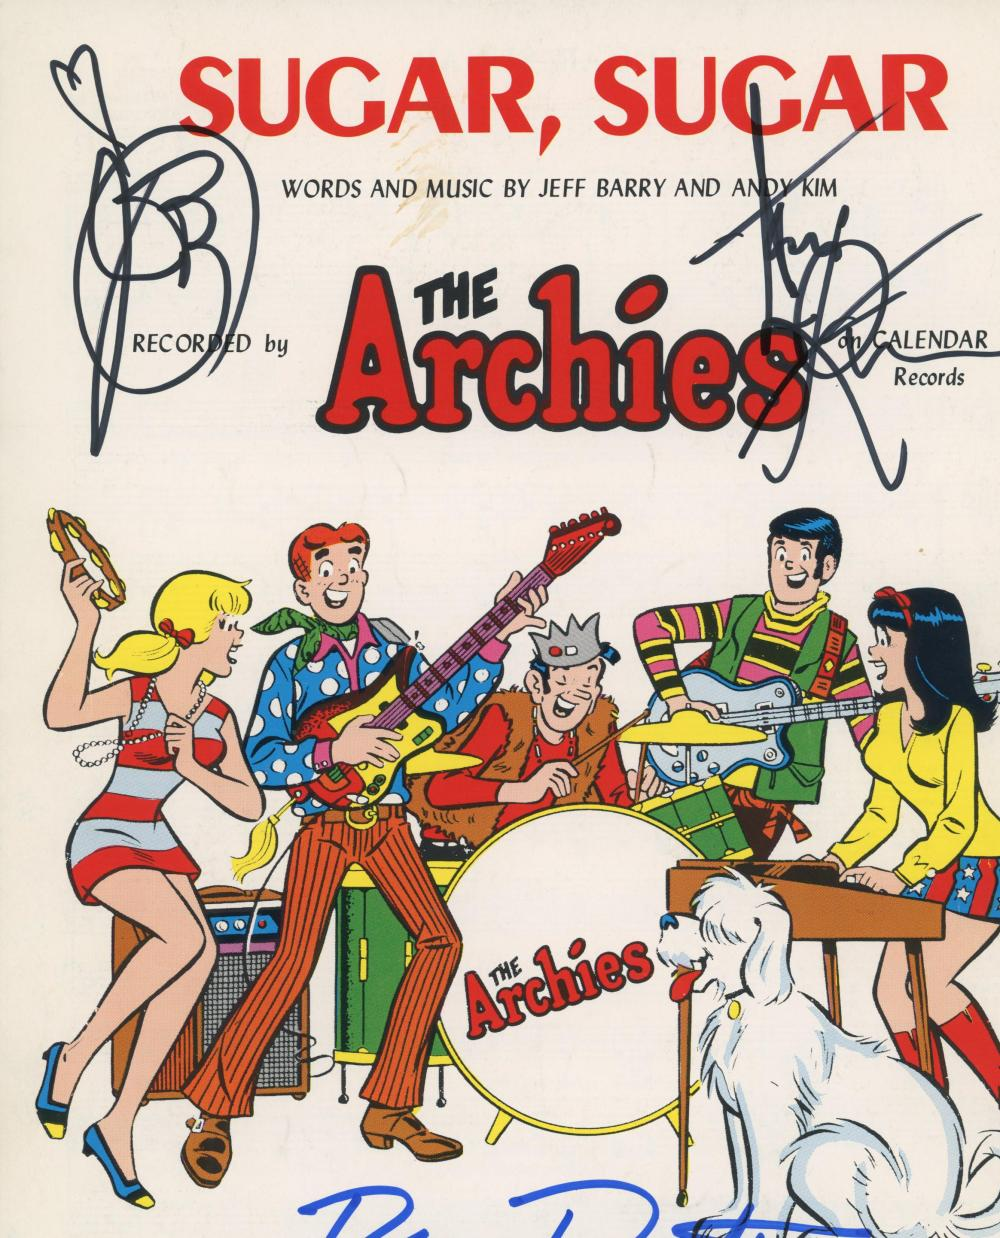 The Archies Sugar Sugar signed music sheet